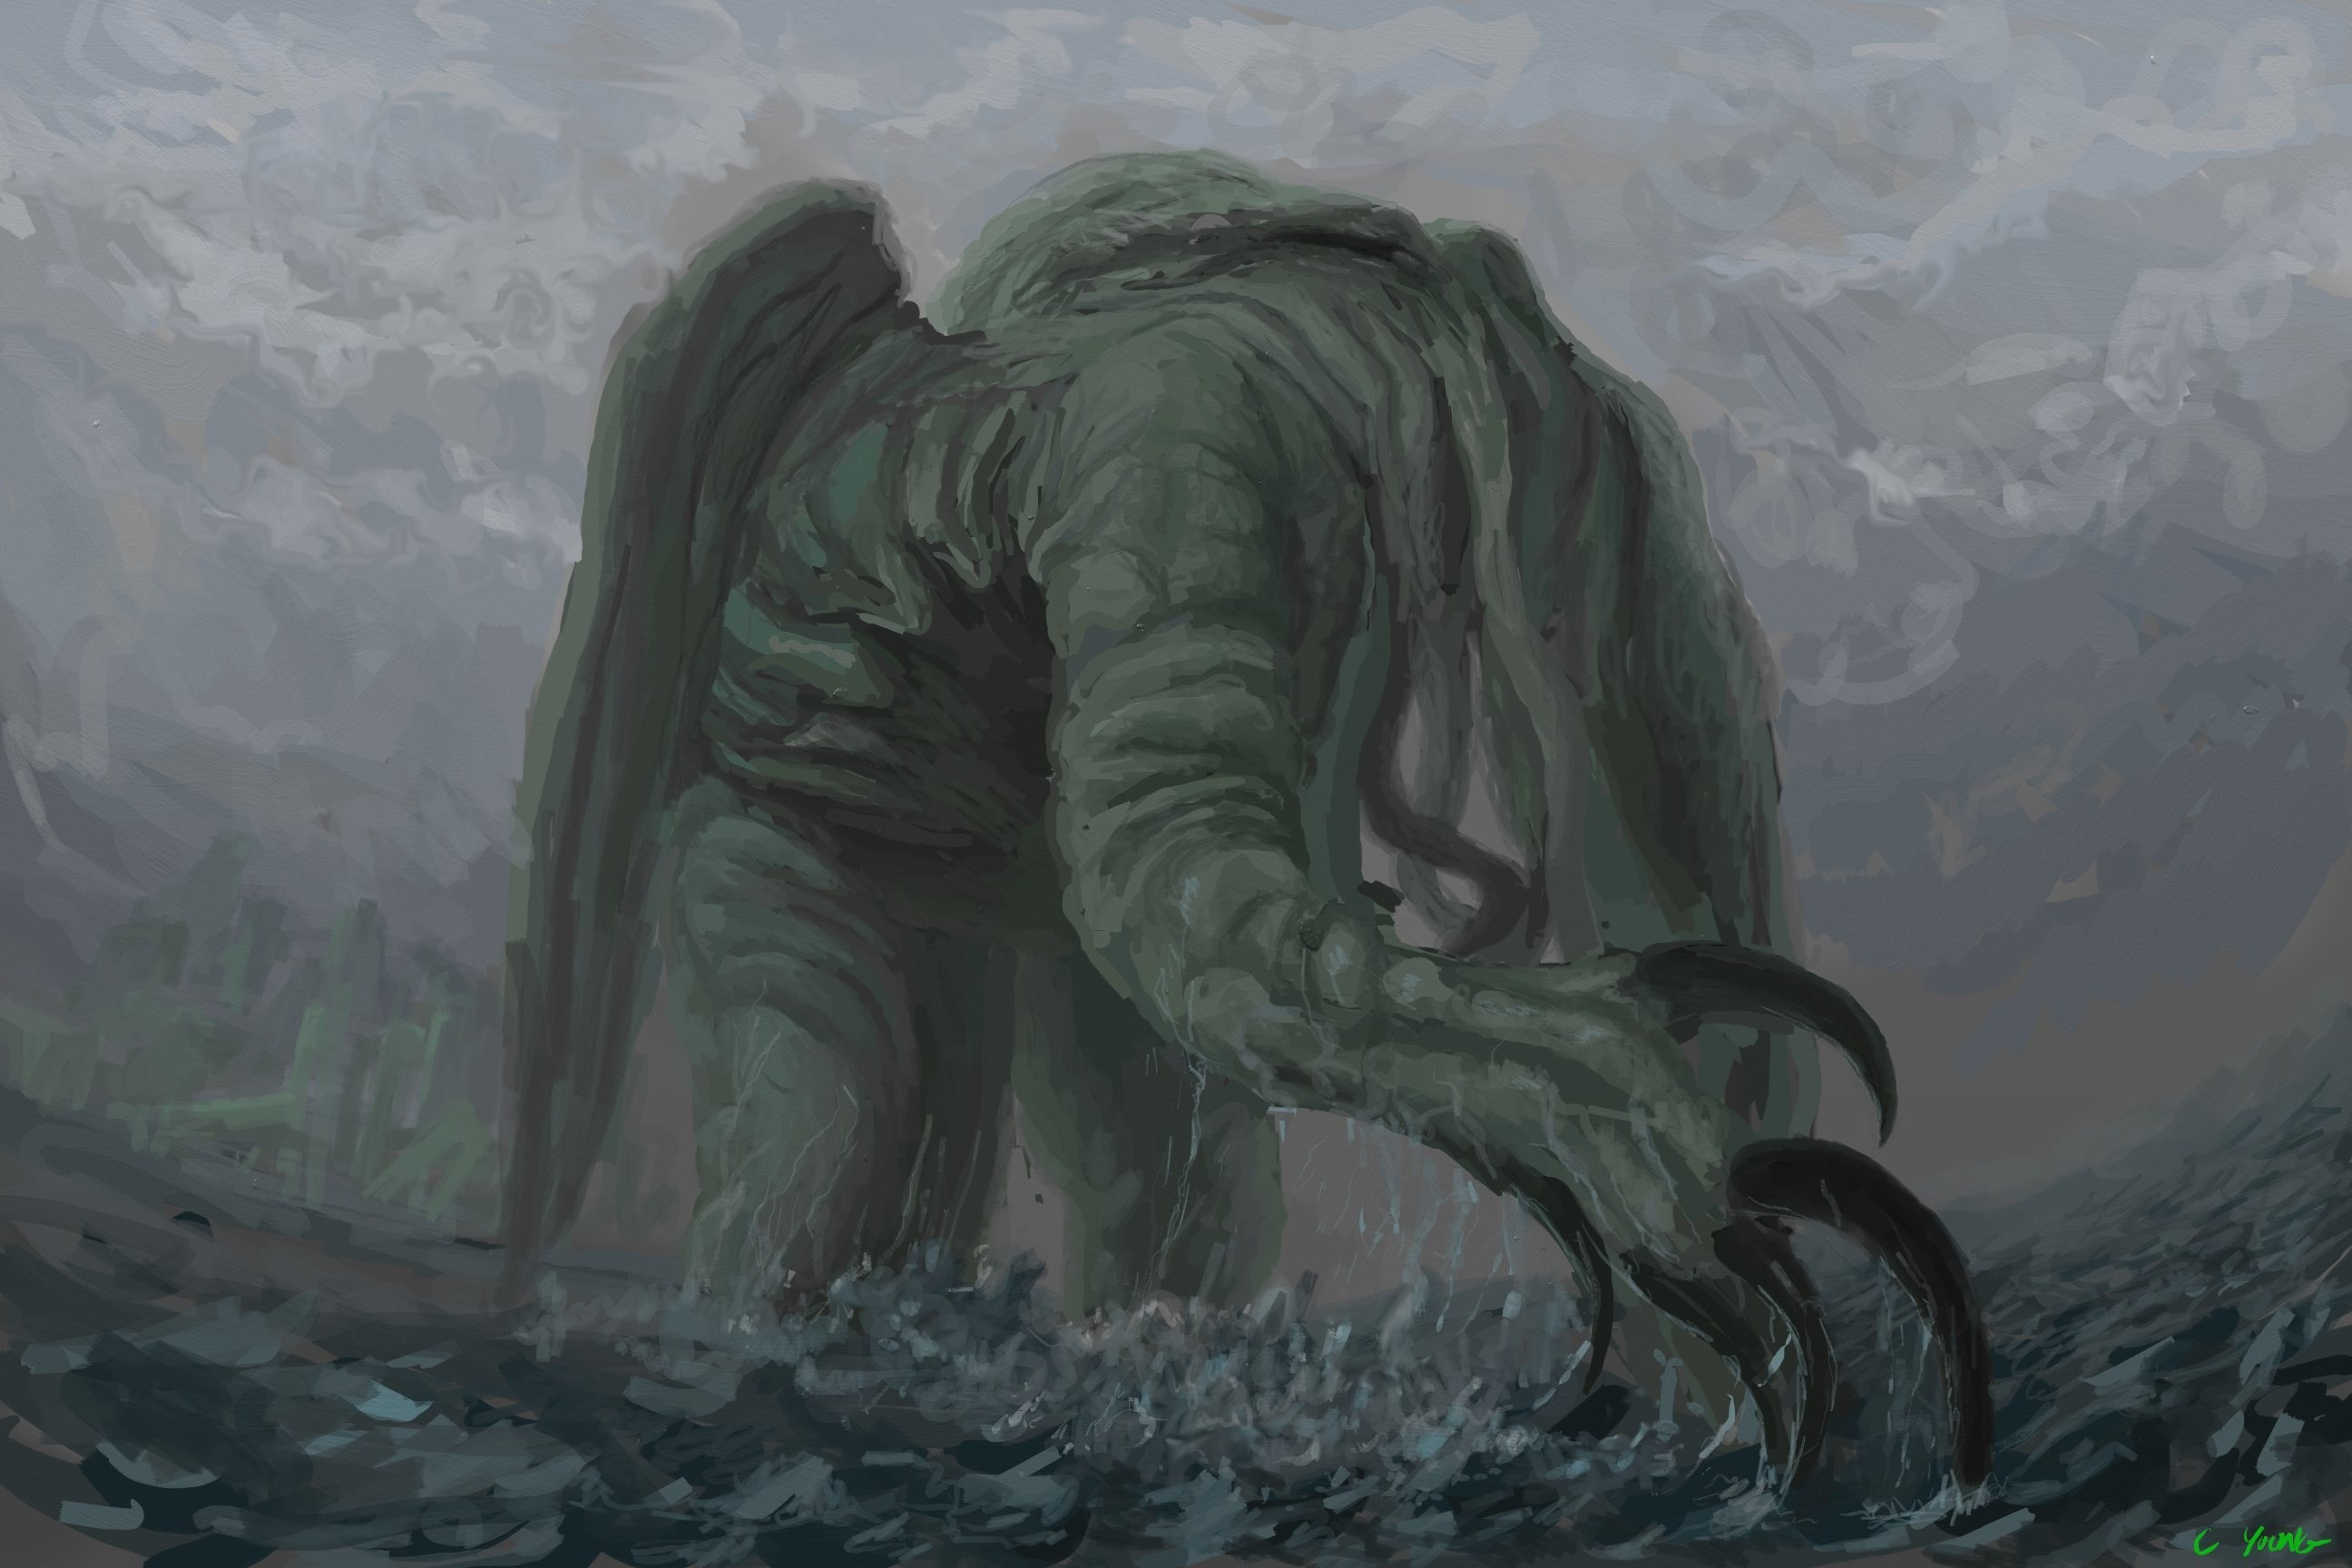 Res: 2592x1728,  px cthulhu wallpaper desktop by Tina WilKinson